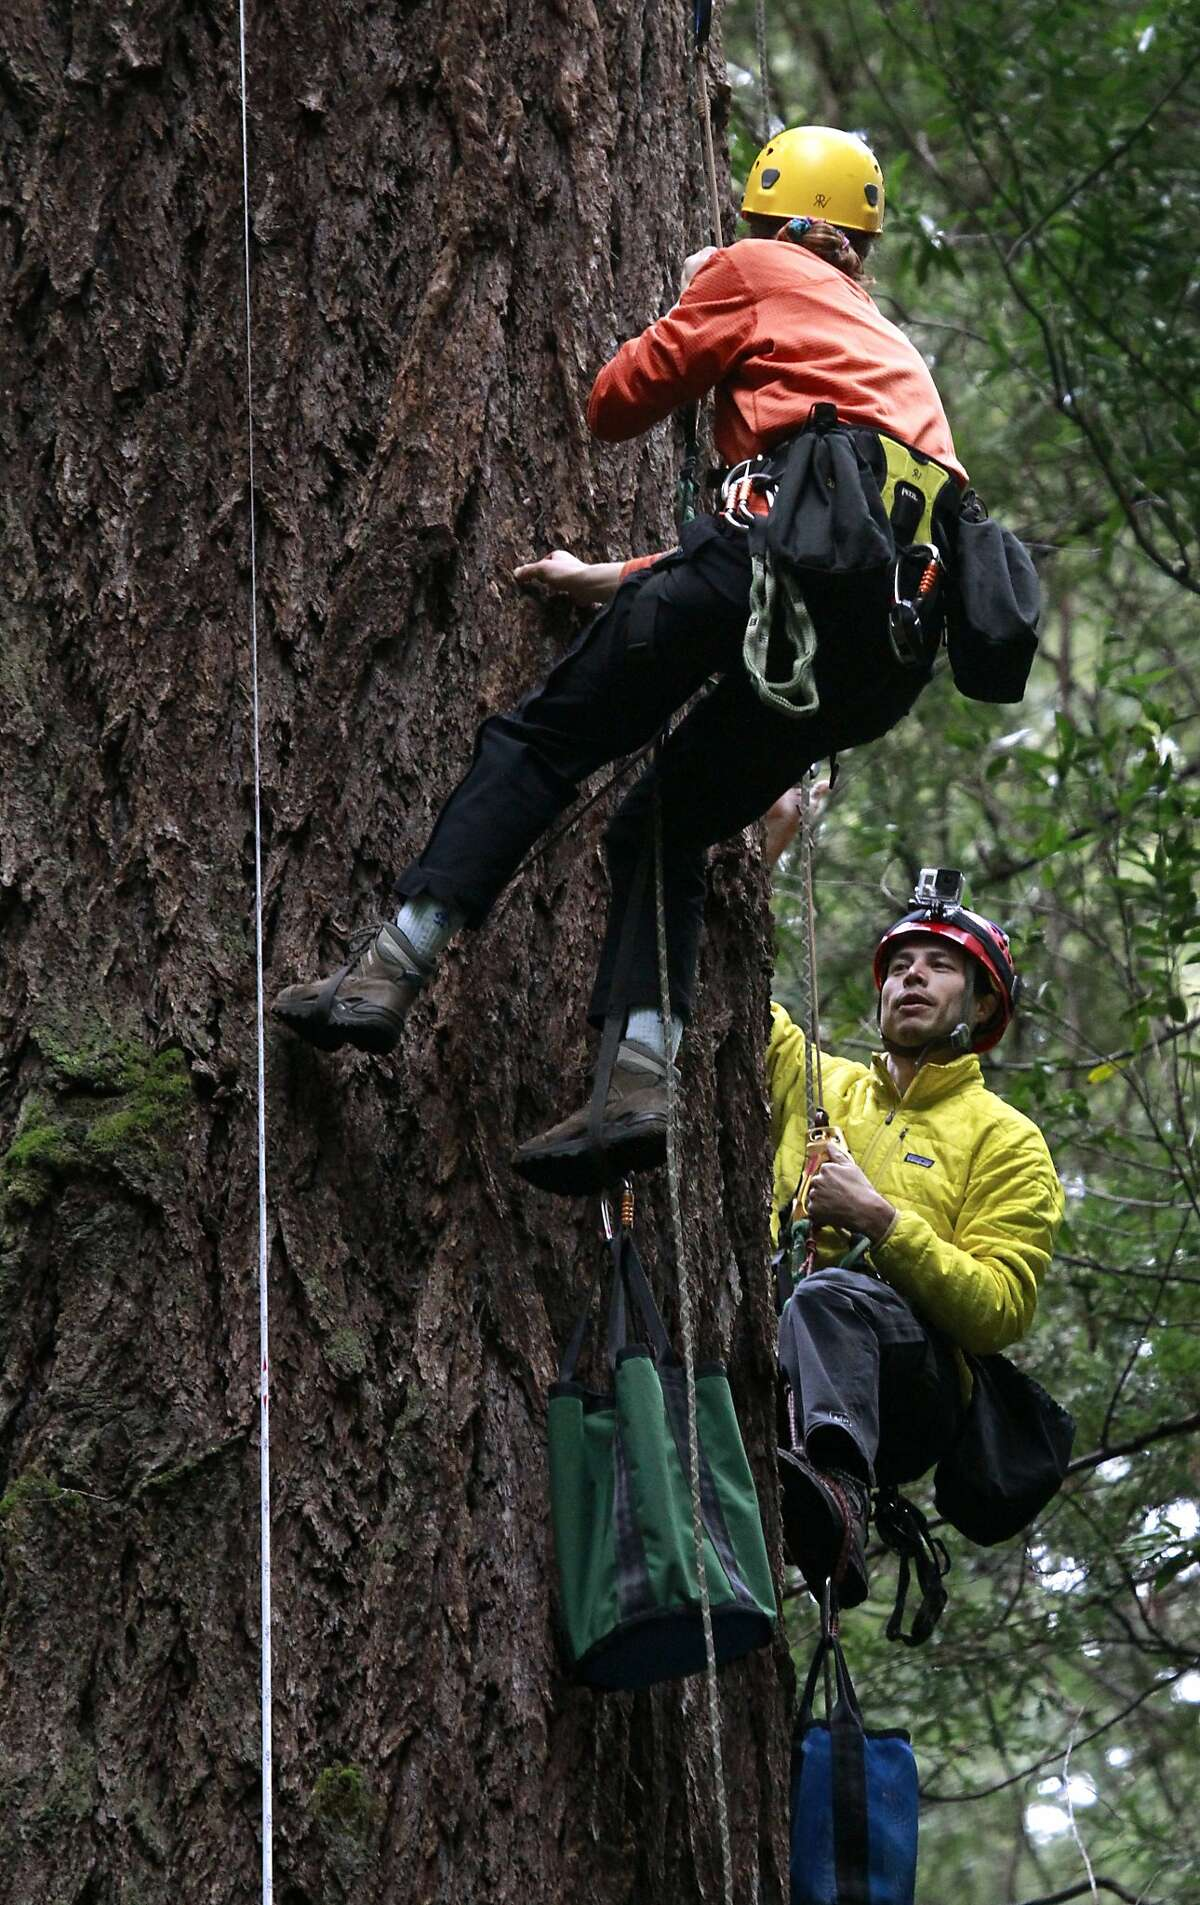 Rikke Naesborg (top) and her husband Cameron Williams ascend a 235-foot Douglas fir for a research study at Muir Woods National Monument on Friday, March 28, 2014. The project is part of BioBlitz, a 24-hour environmental program with conservation groups and scientists from around the Bay Area and the country converging on the Golden Gate National Recreation Area to study a variety of issues.